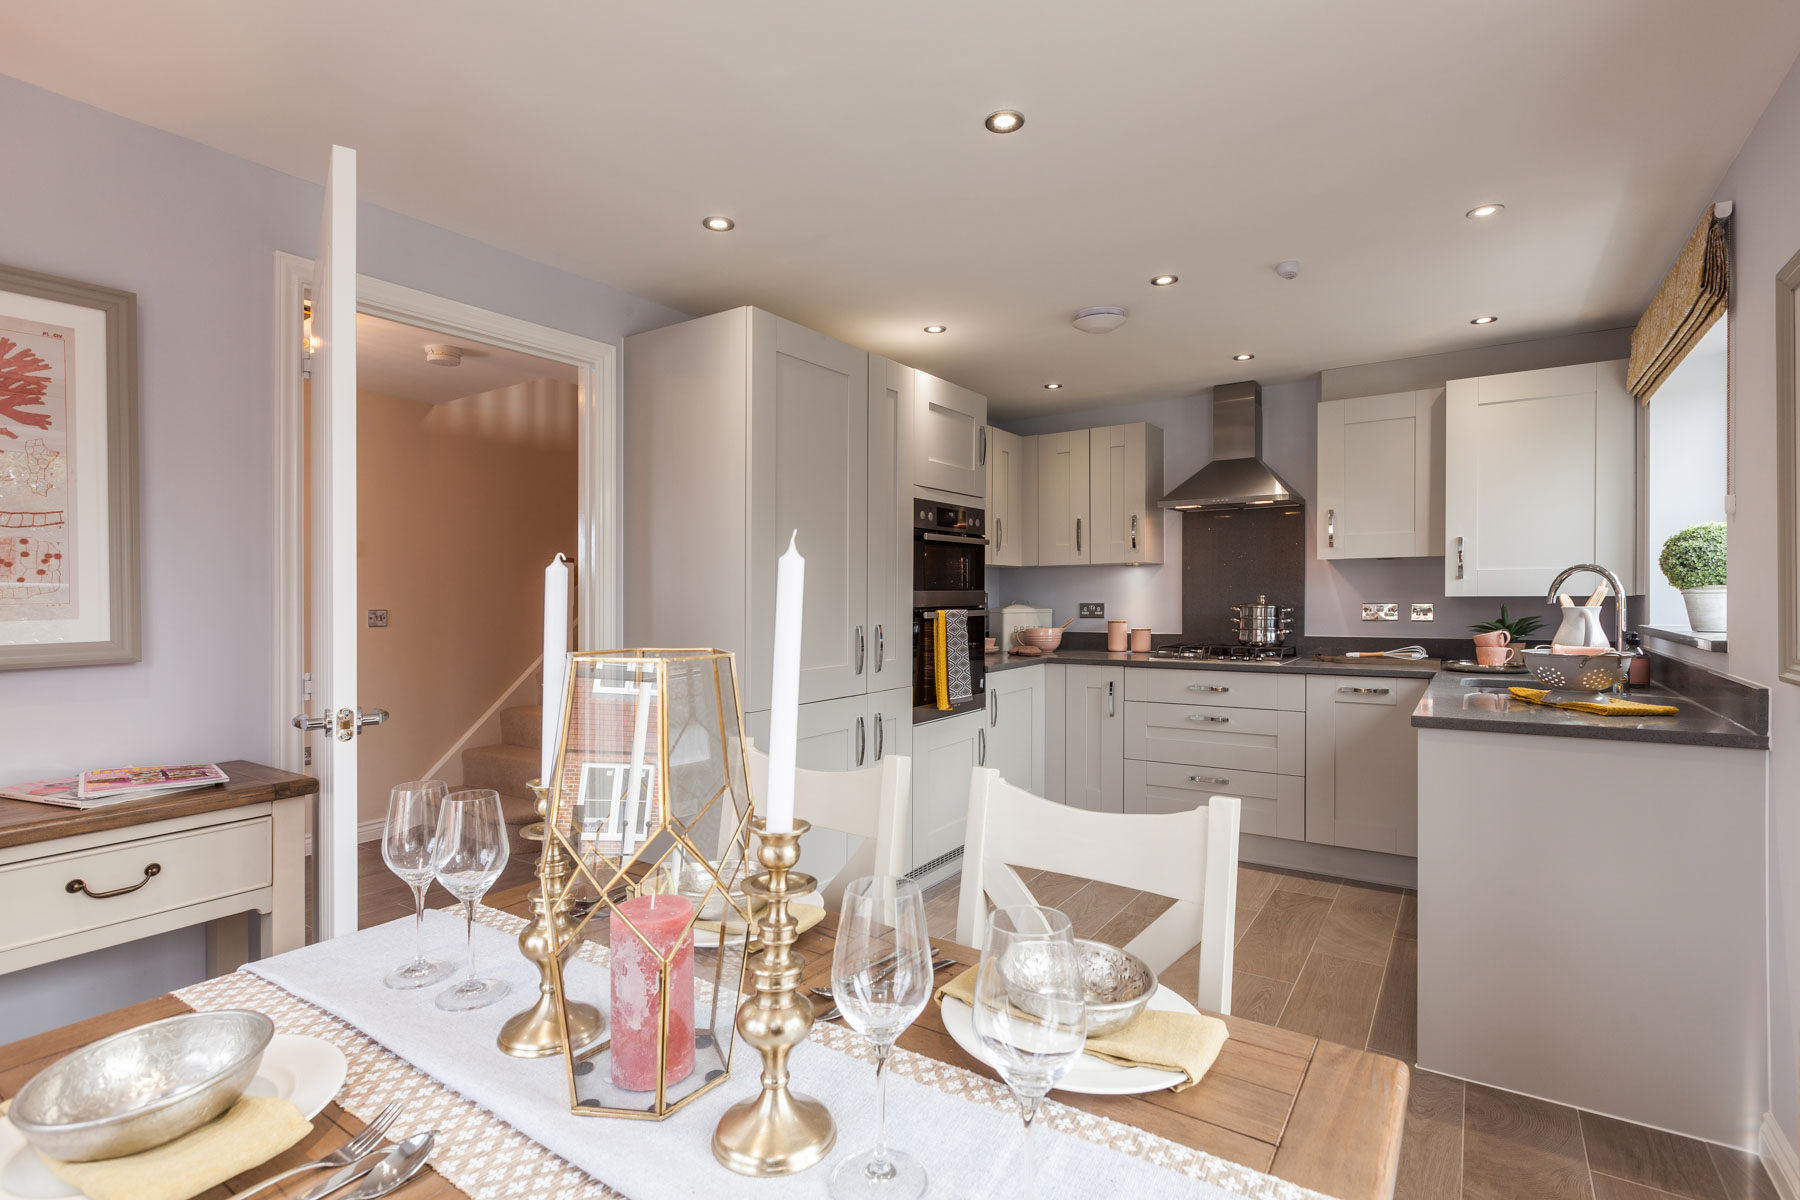 Taylor Wimpey Exeter - Buckingham Heights - Easdale example kitchen 2